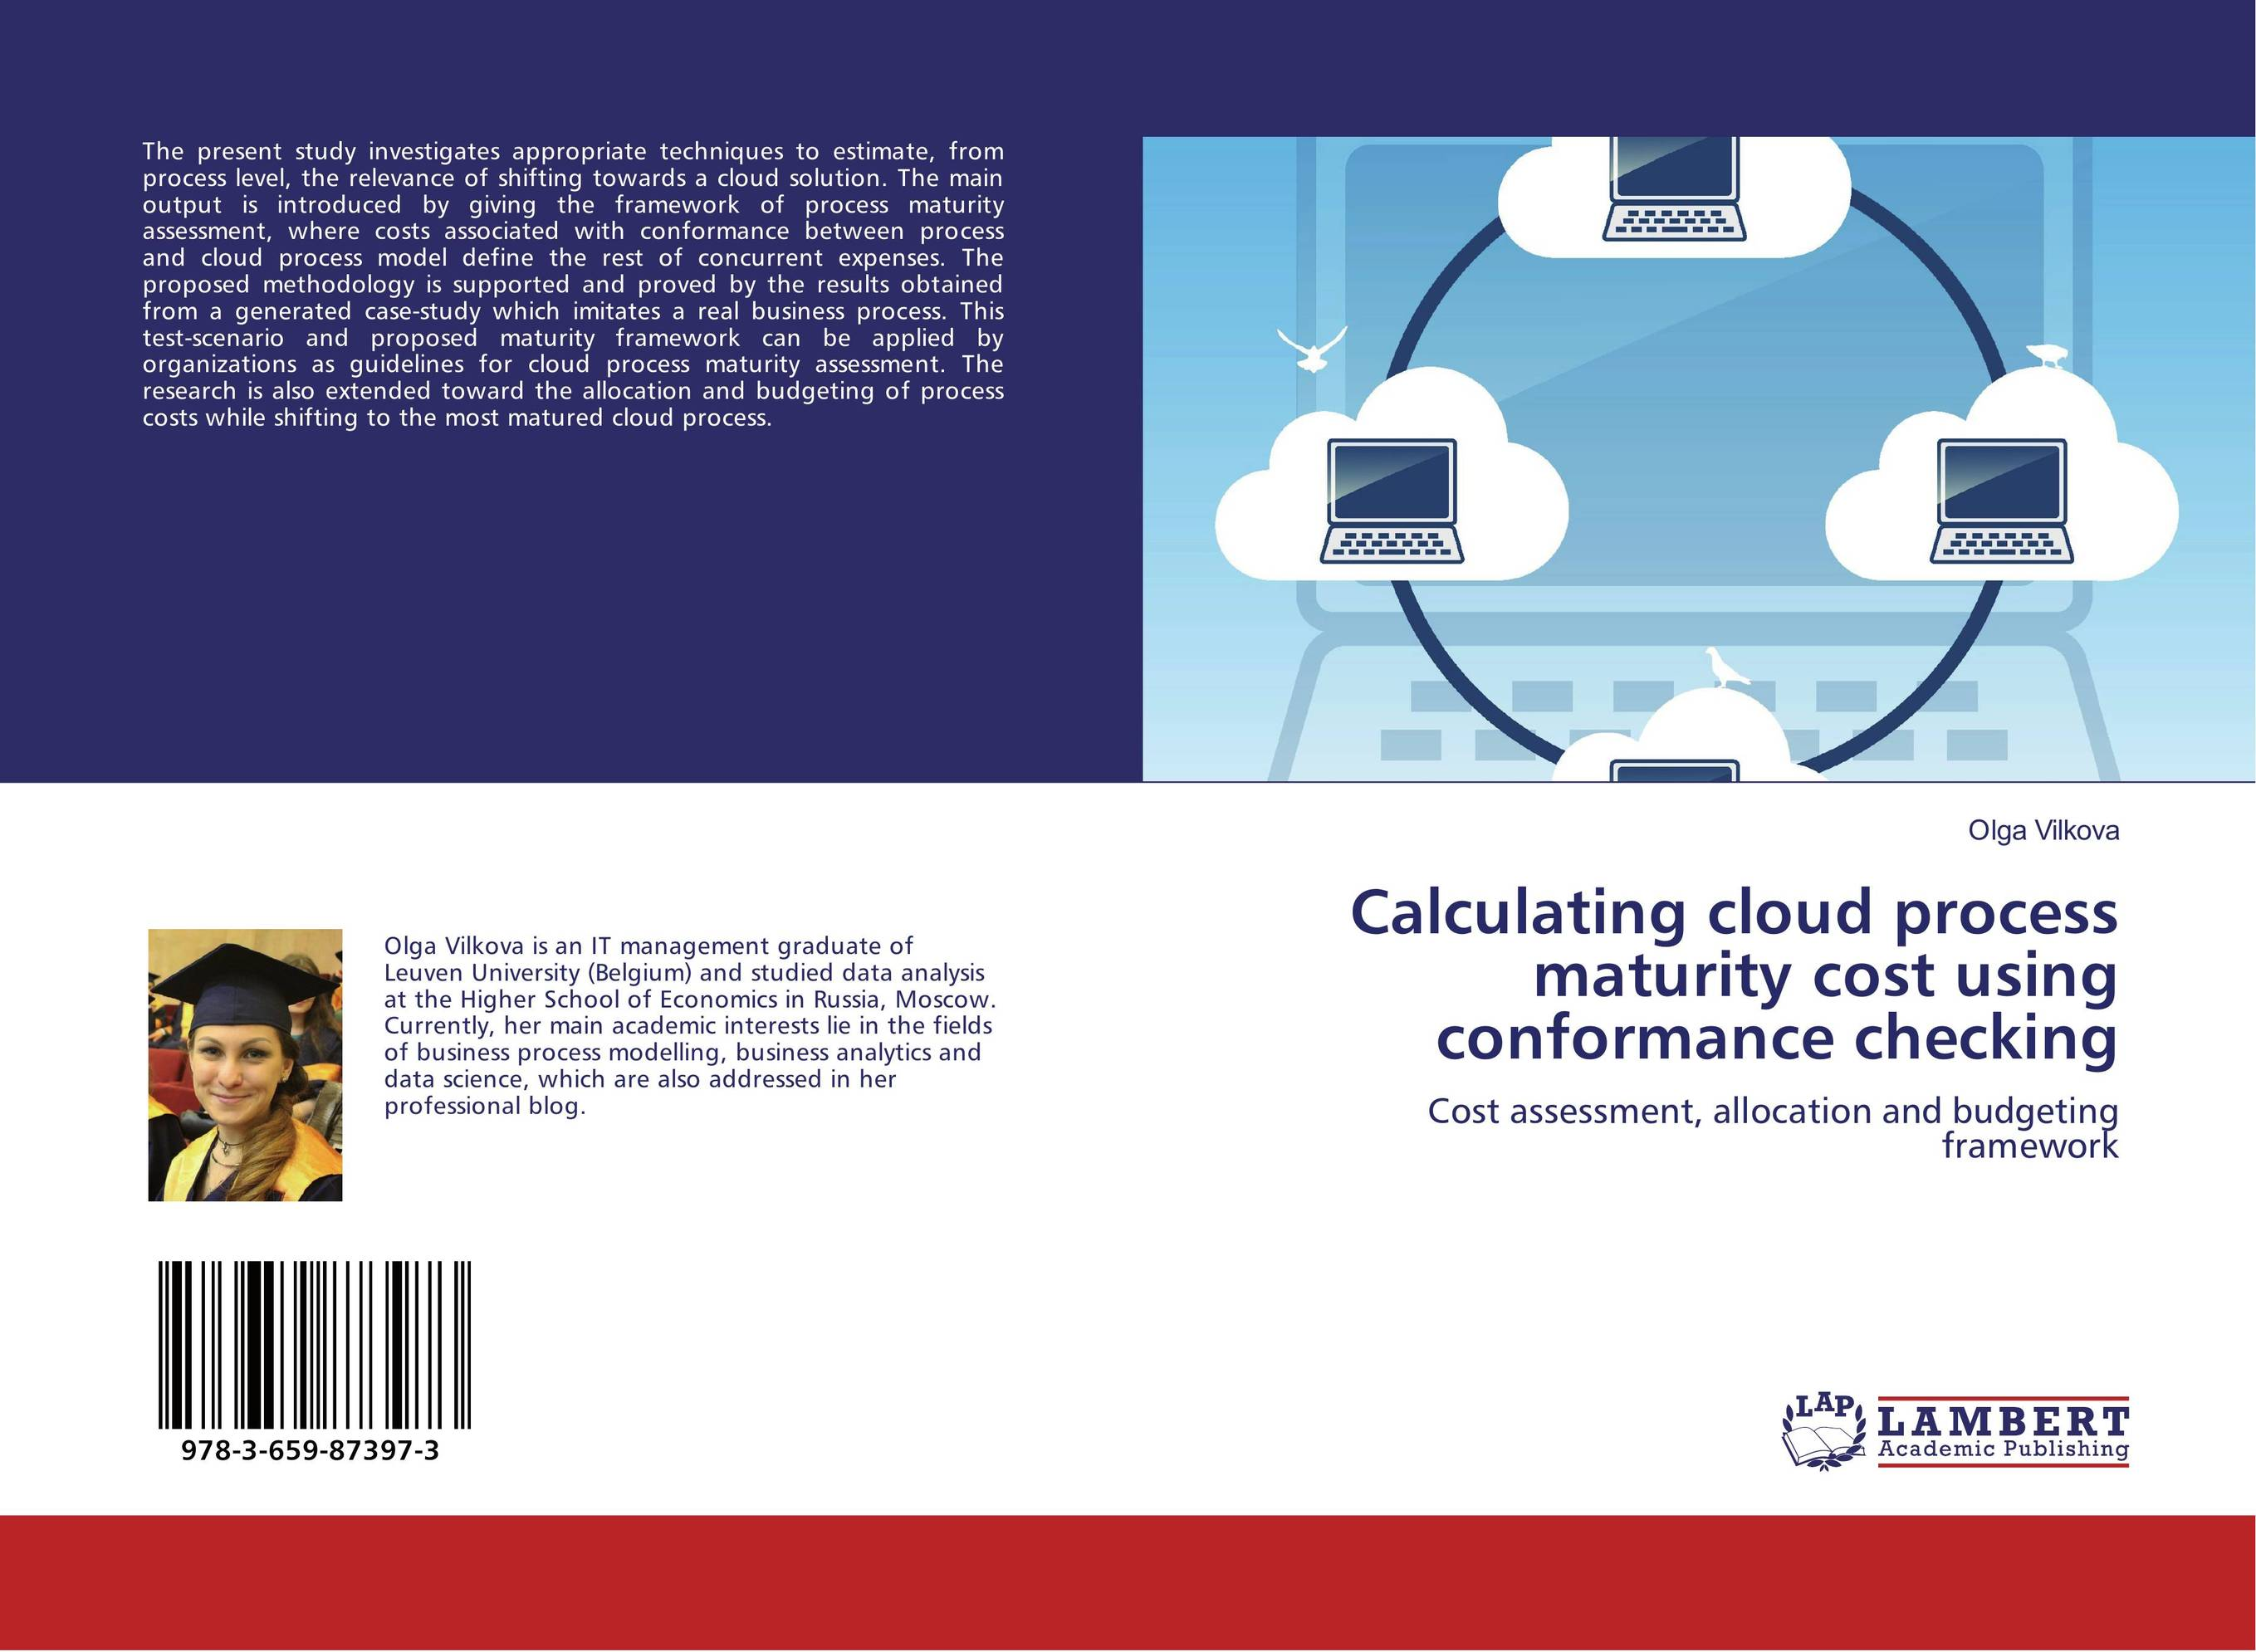 Calculating cloud process maturity cost using conformance checking